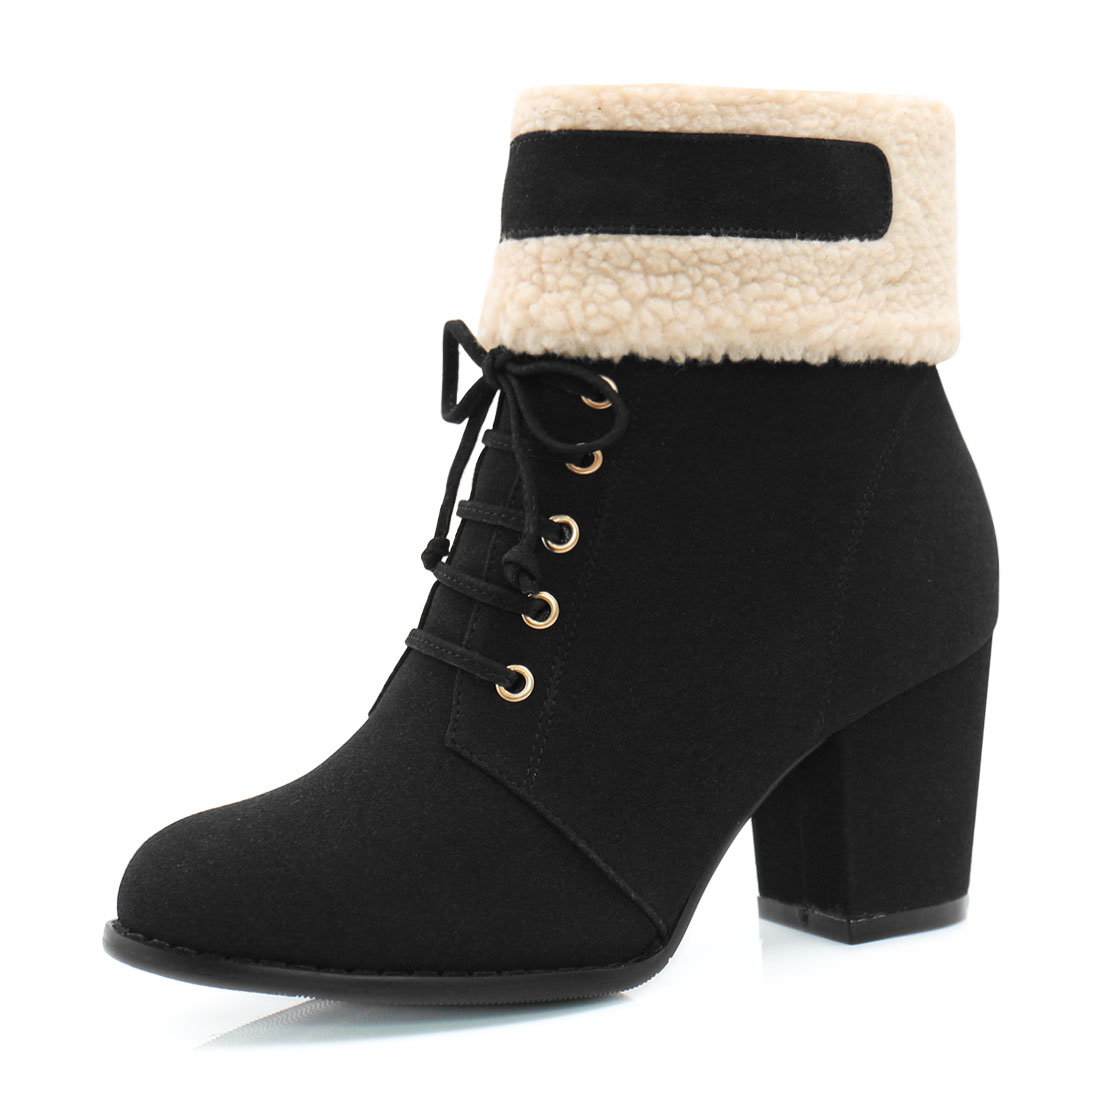 Women Plush Trim Chunky Heel Lace Up Decor Ankle Boots Black US 9